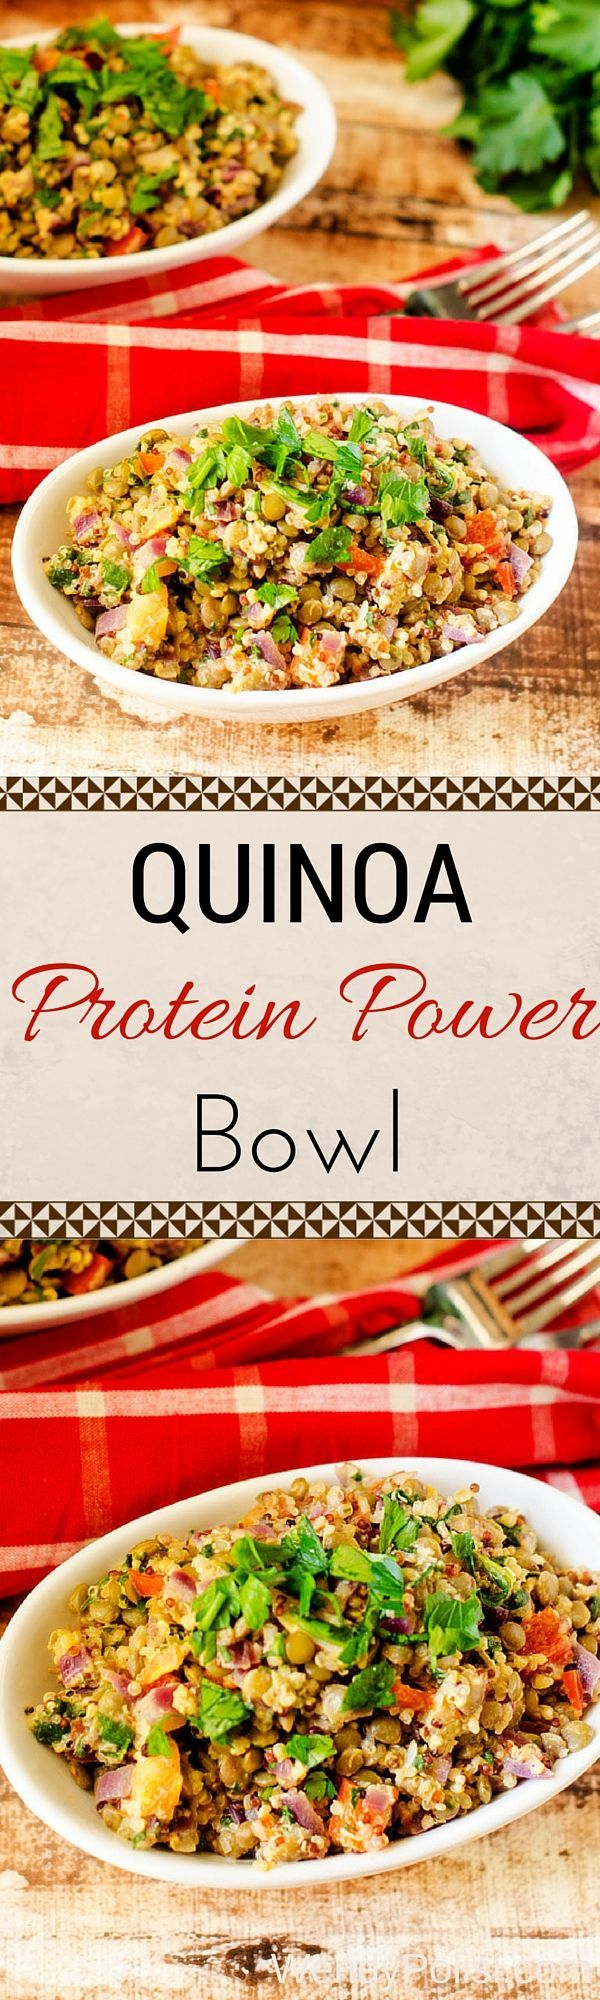 Quinoa Protein Power Bowl with Lemon Tahini Sauce - This quinoa bowl is easy to make, delicious and so satisfying!